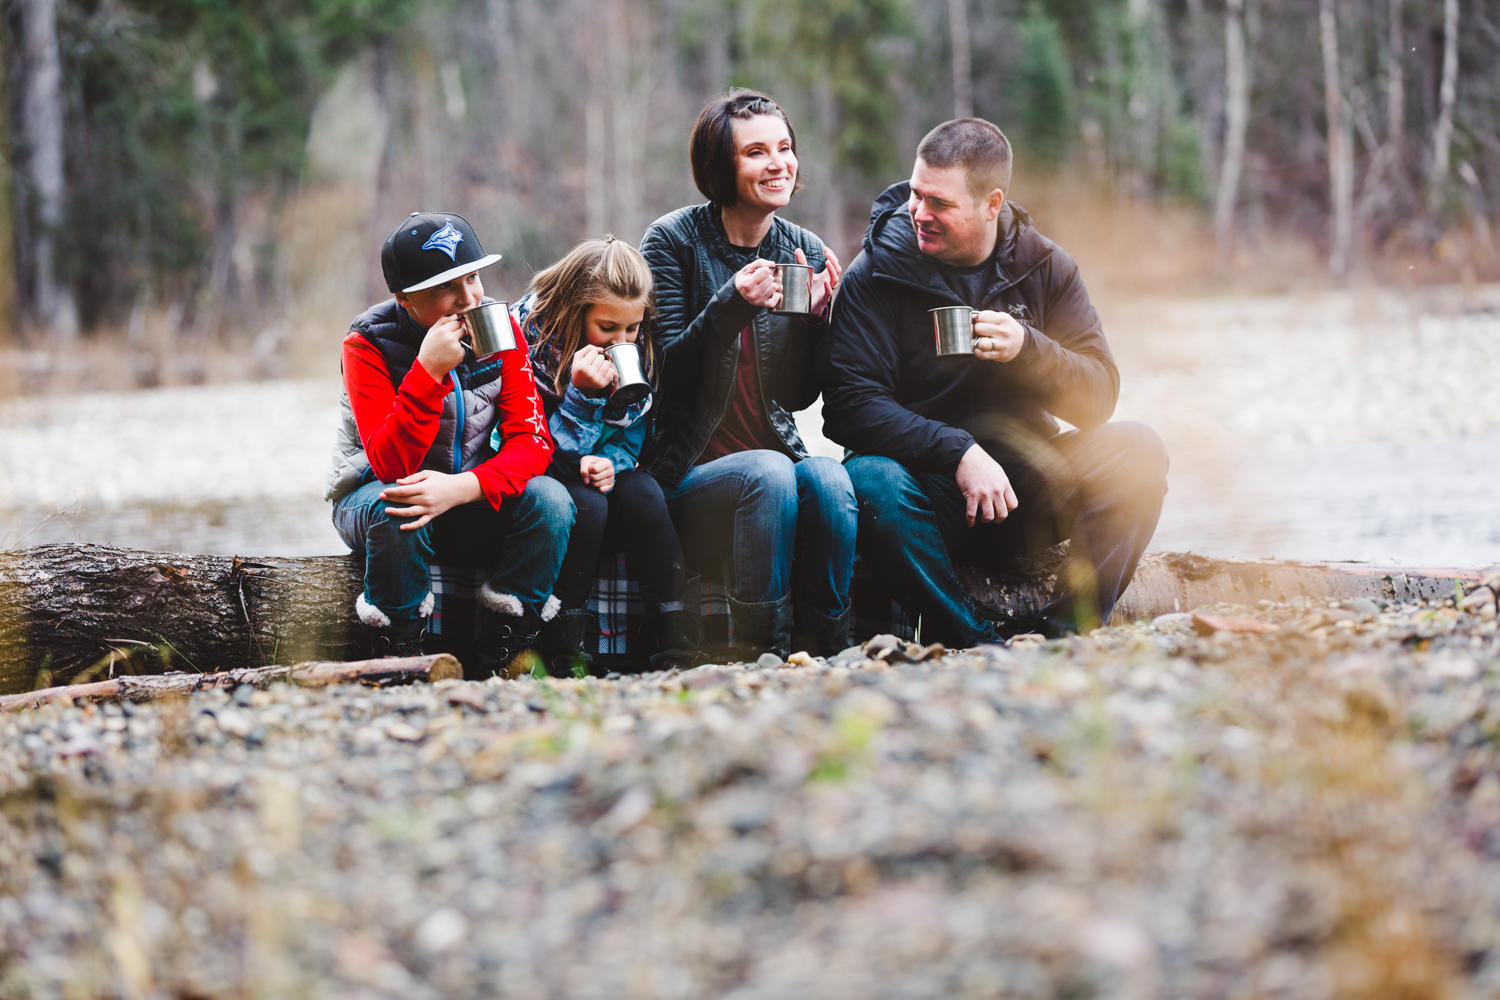 quesnel-family-photographers-quesnel-family-photography-cotton-wood-river-quesnel-bc-kelowna-photographer-julie-dorge (44 of 48).jpg